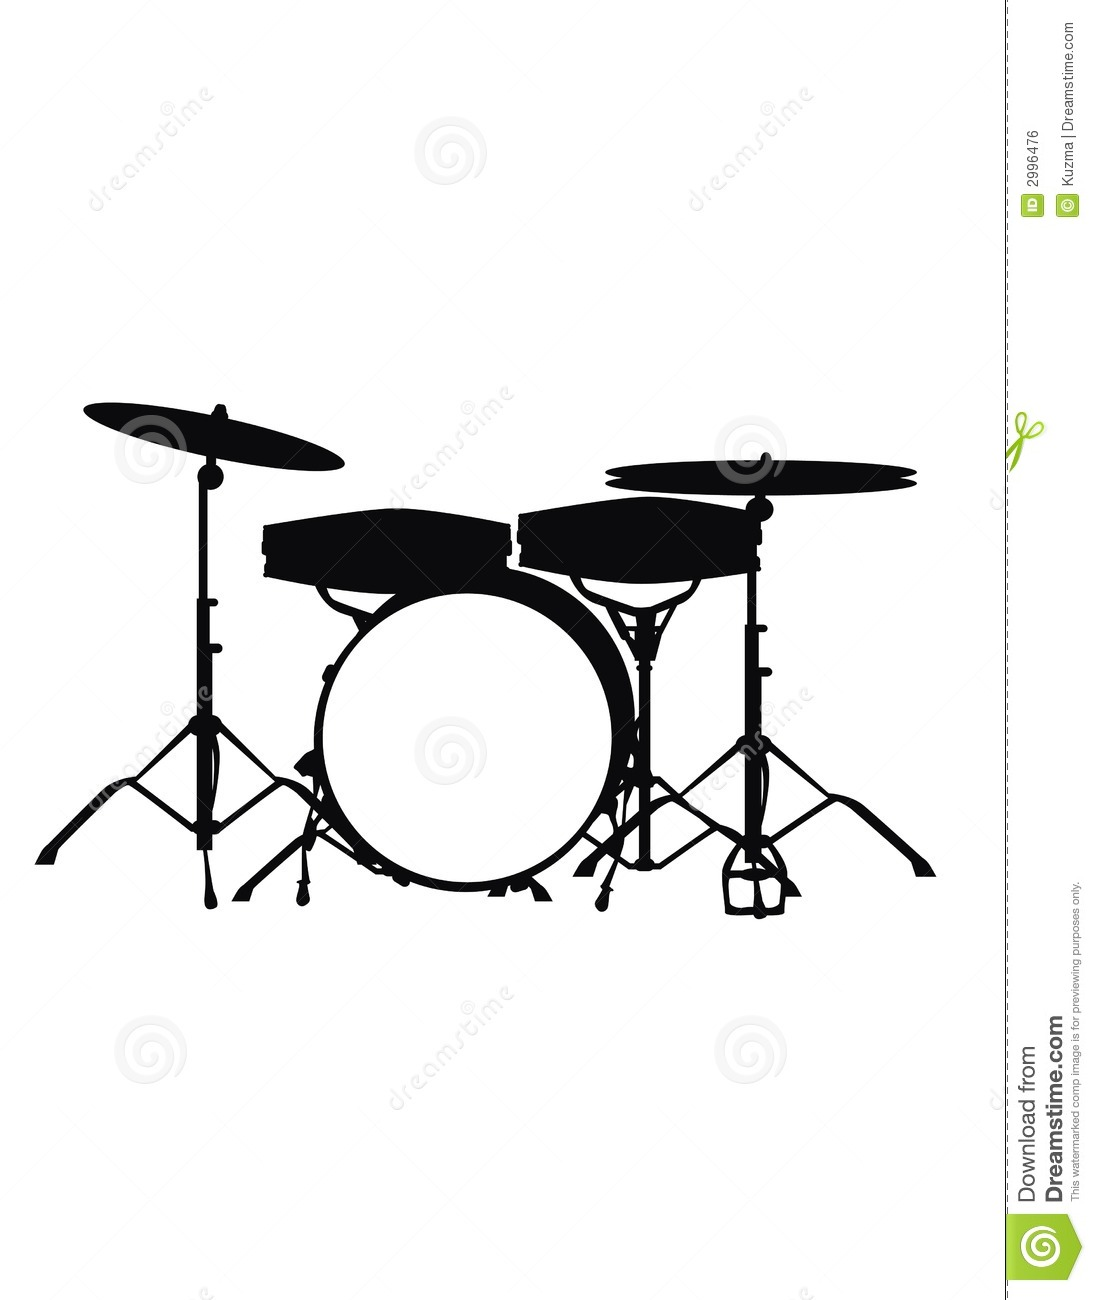 Drumset Stock Vector Image Of Black Drums Drummer Silhouette